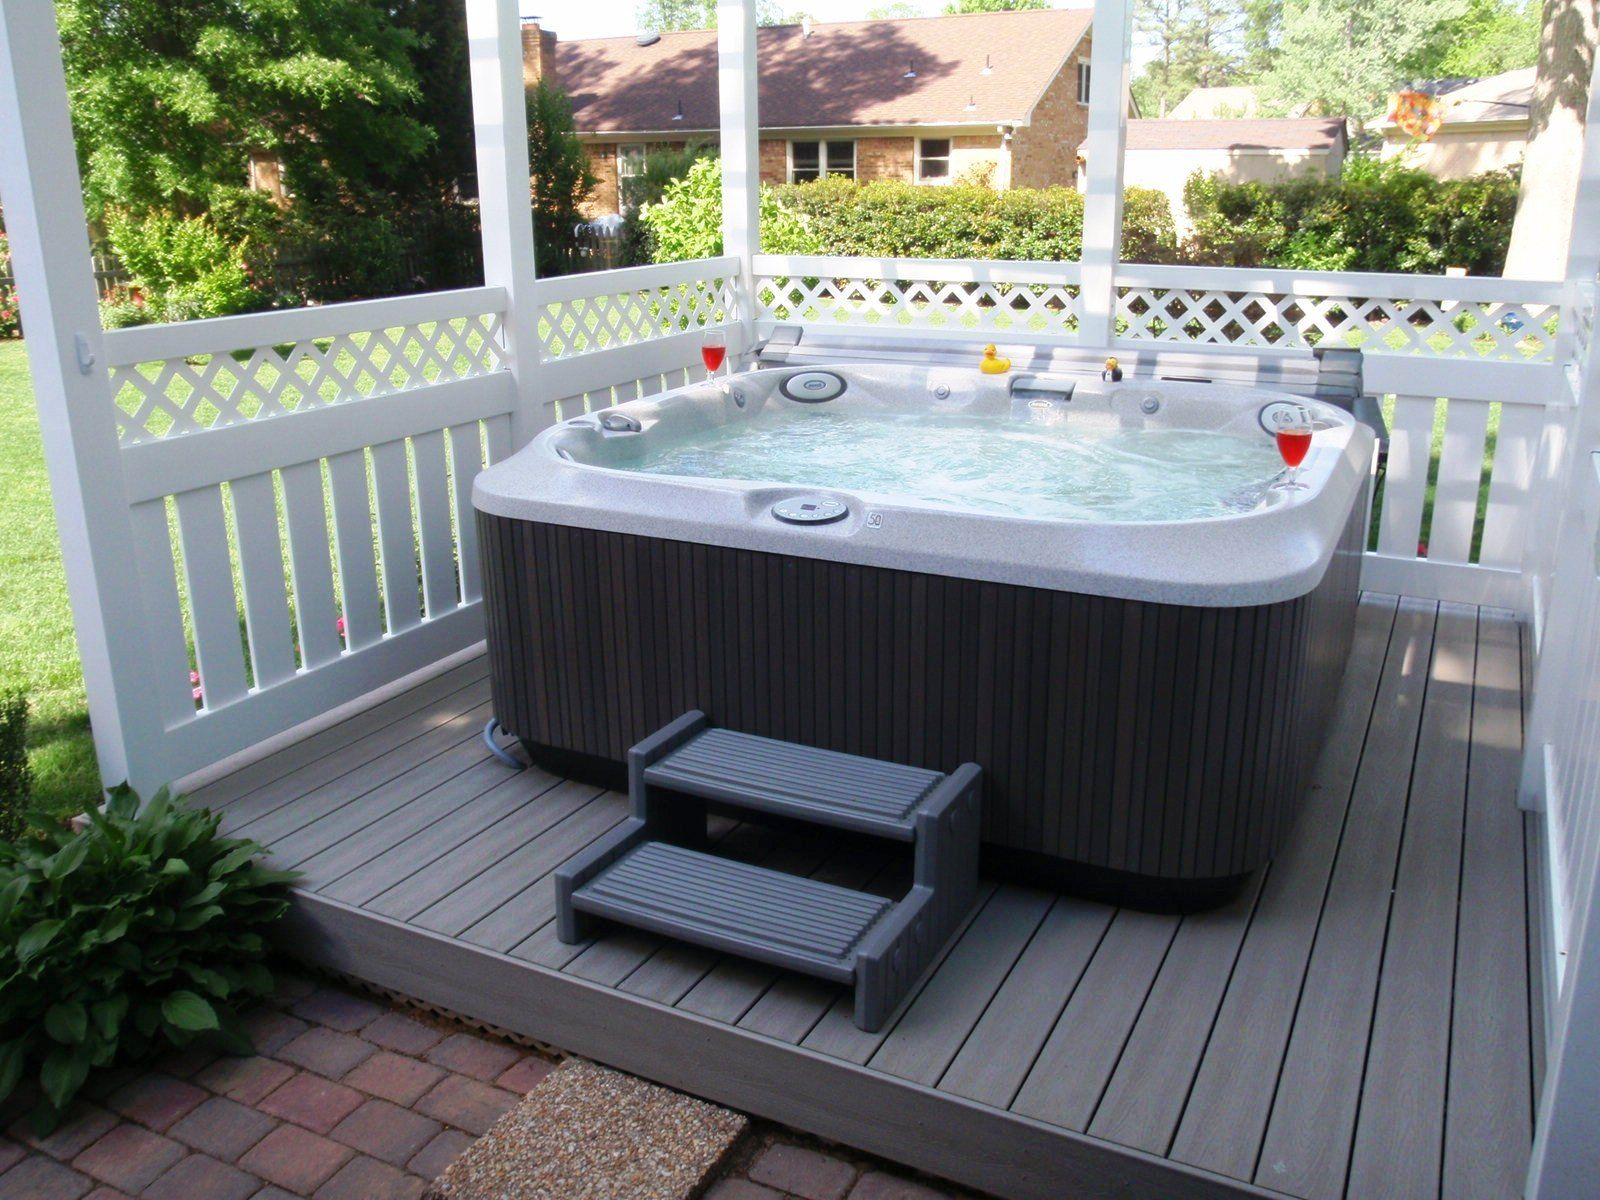 Hot tub on the deck | Deck decor | Pinterest | Hot tubs, Tubs and ...